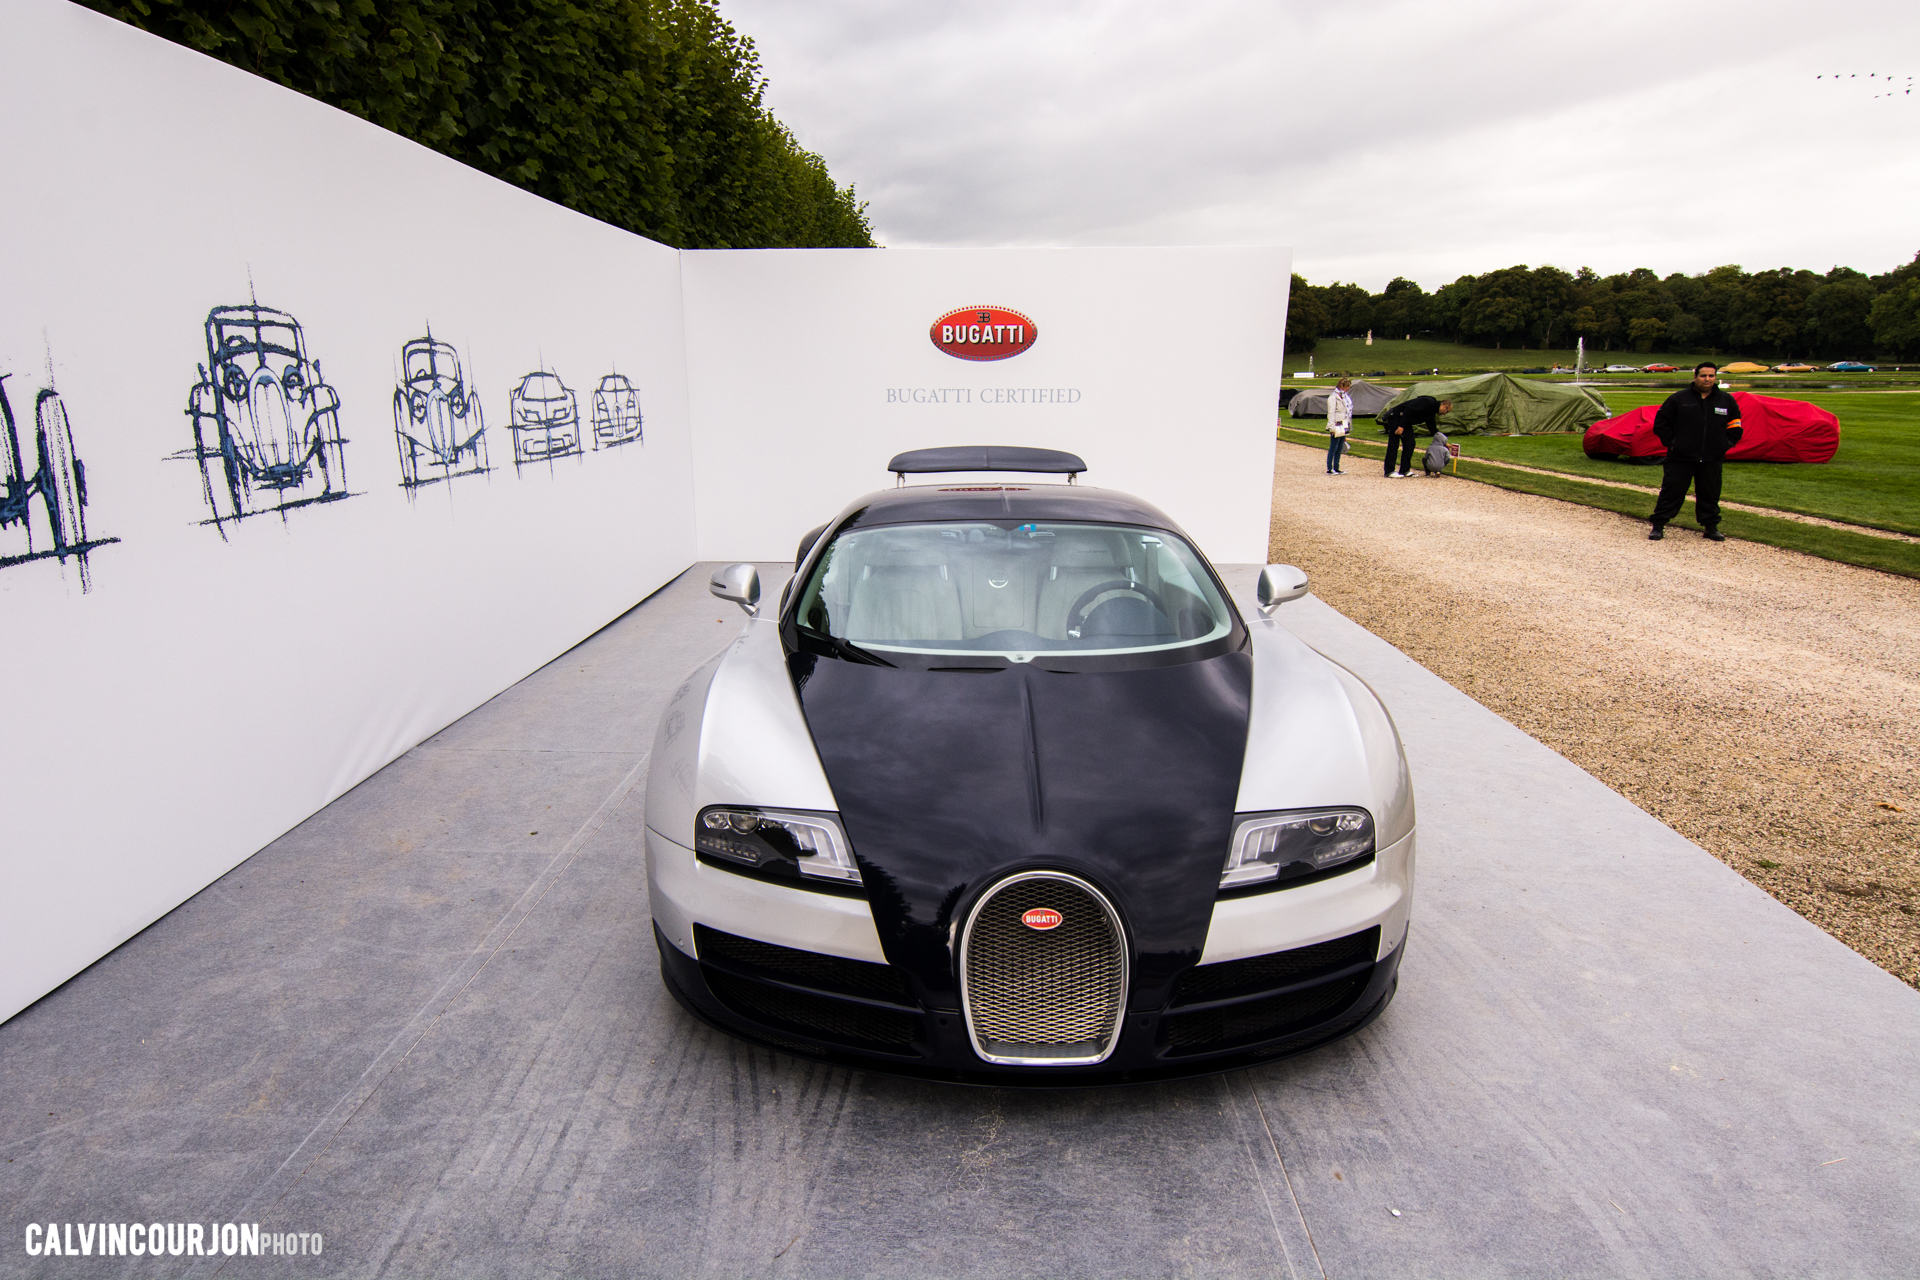 Bugatti Veyron - Chantilly 2015 – photo Calvin Courjon